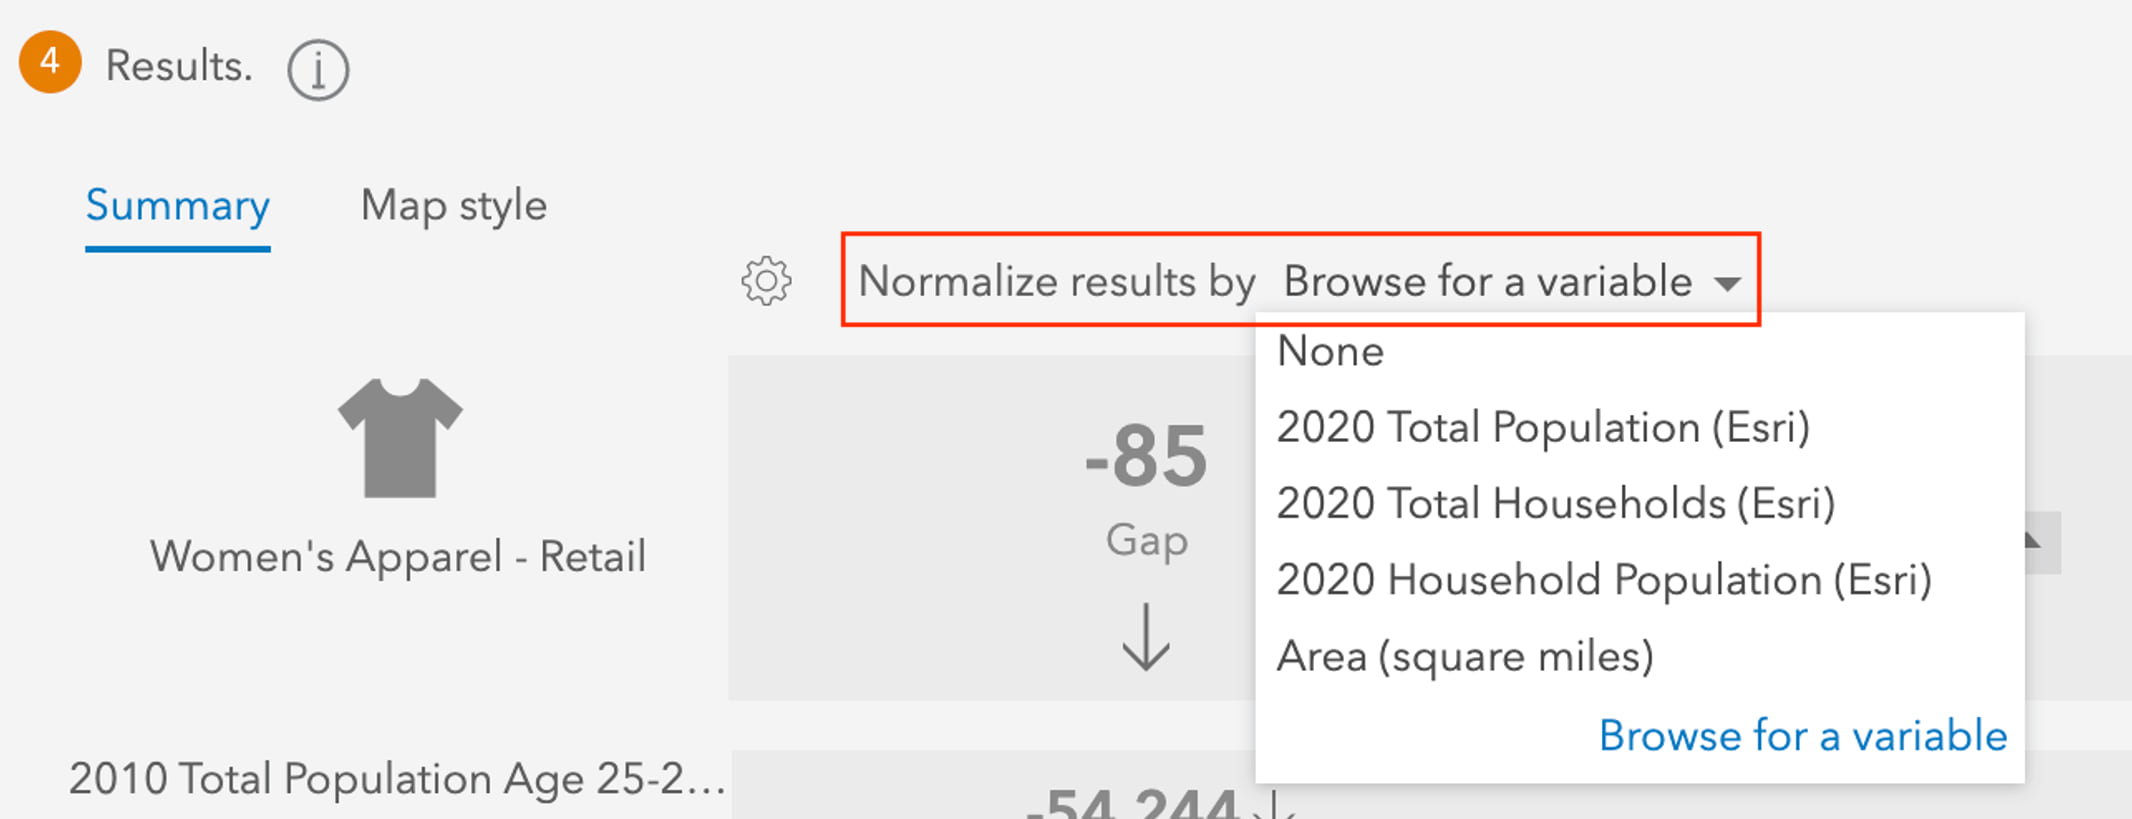 Void Analysis normalization dropdown in ArcGIS Business Analyst Web App